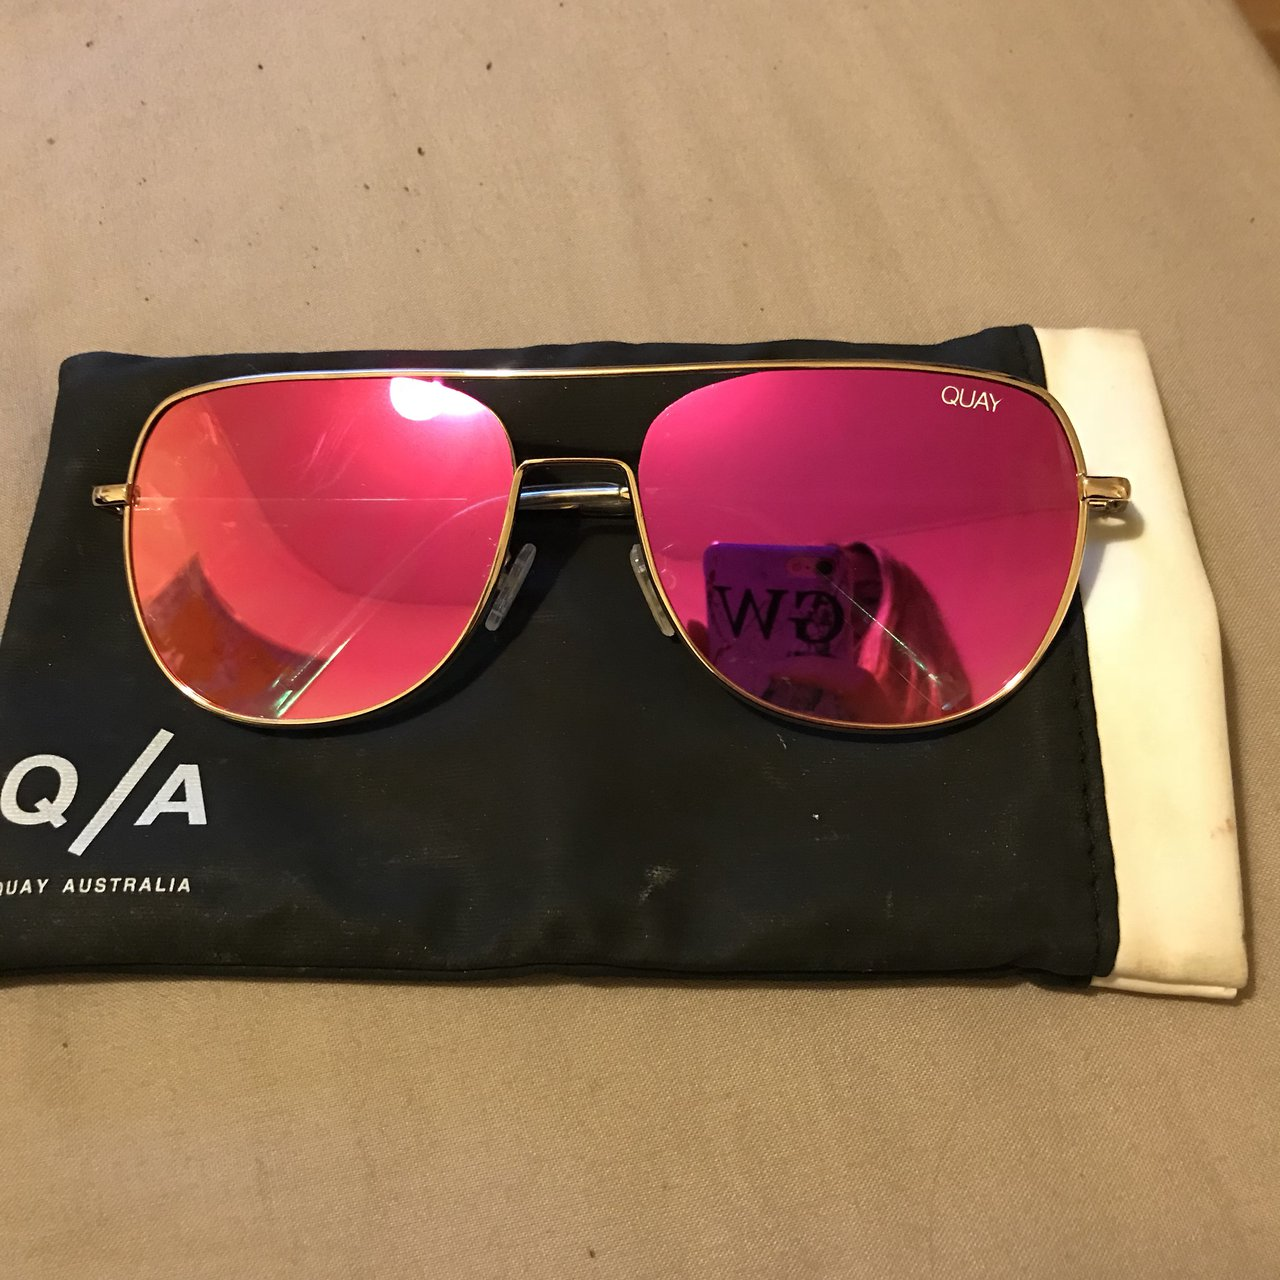 0c04c5bf8e1 Quay Australia sunglasses have been worn so not perfect . is - Depop